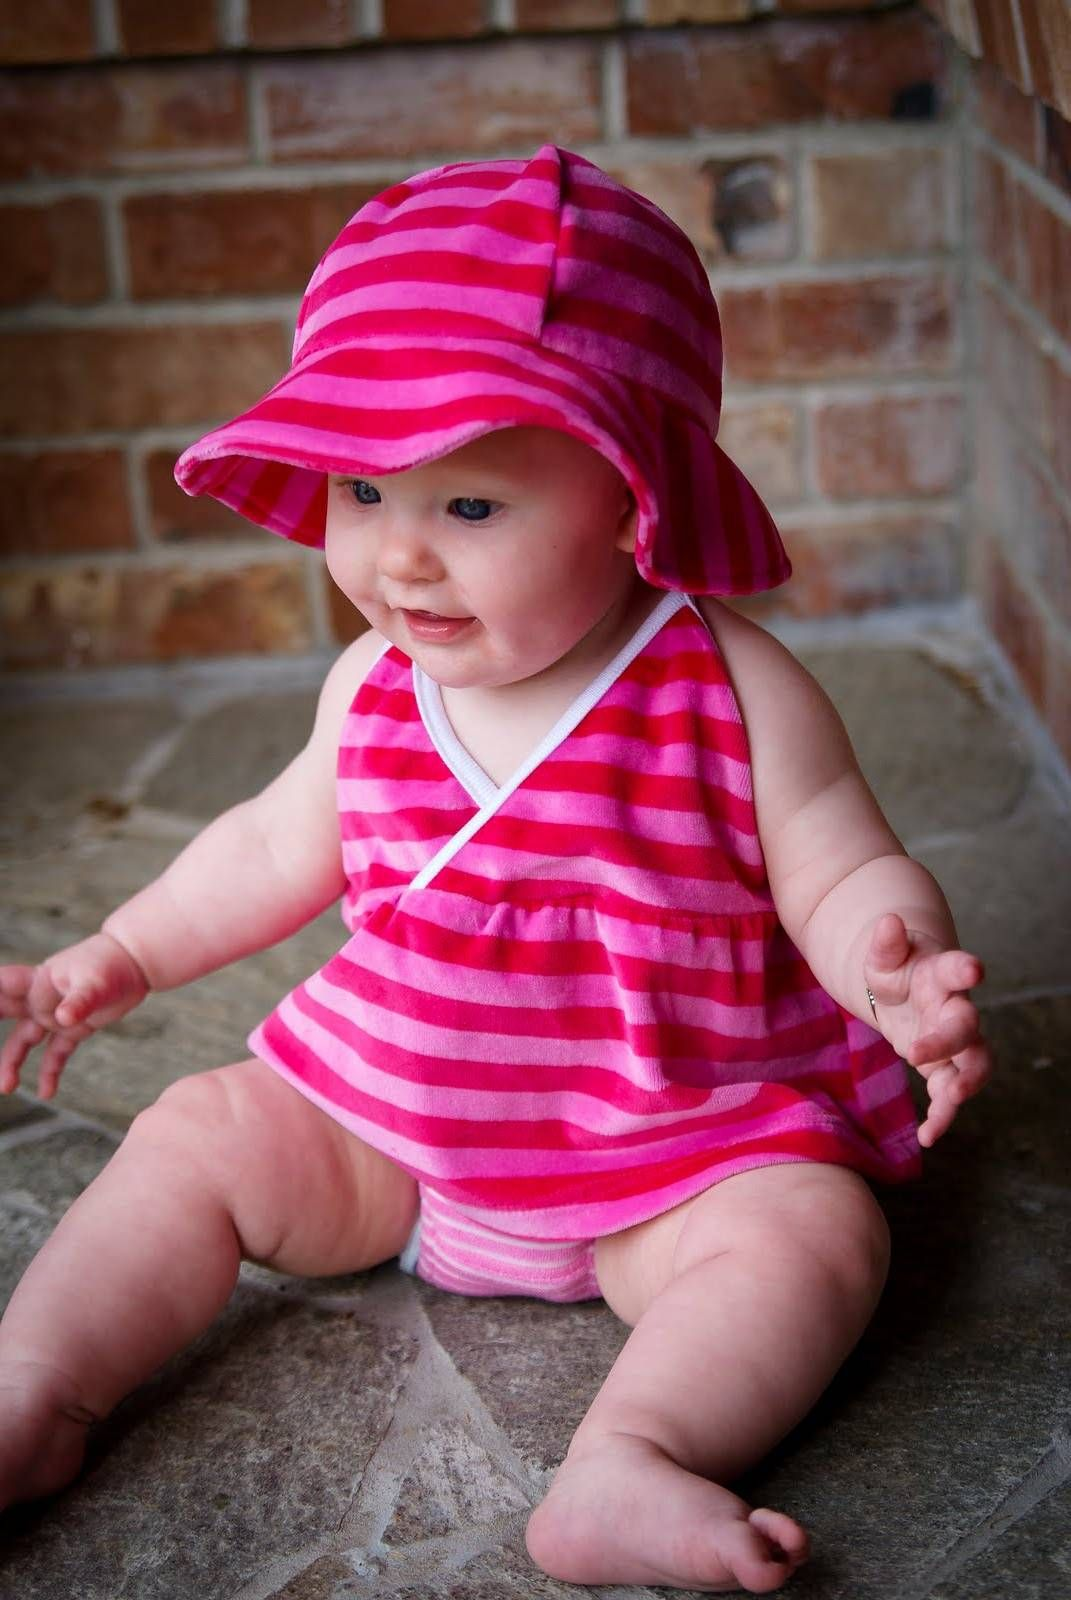 baby girl wearing pink dress and blue eyes 314x470 cute baby girl